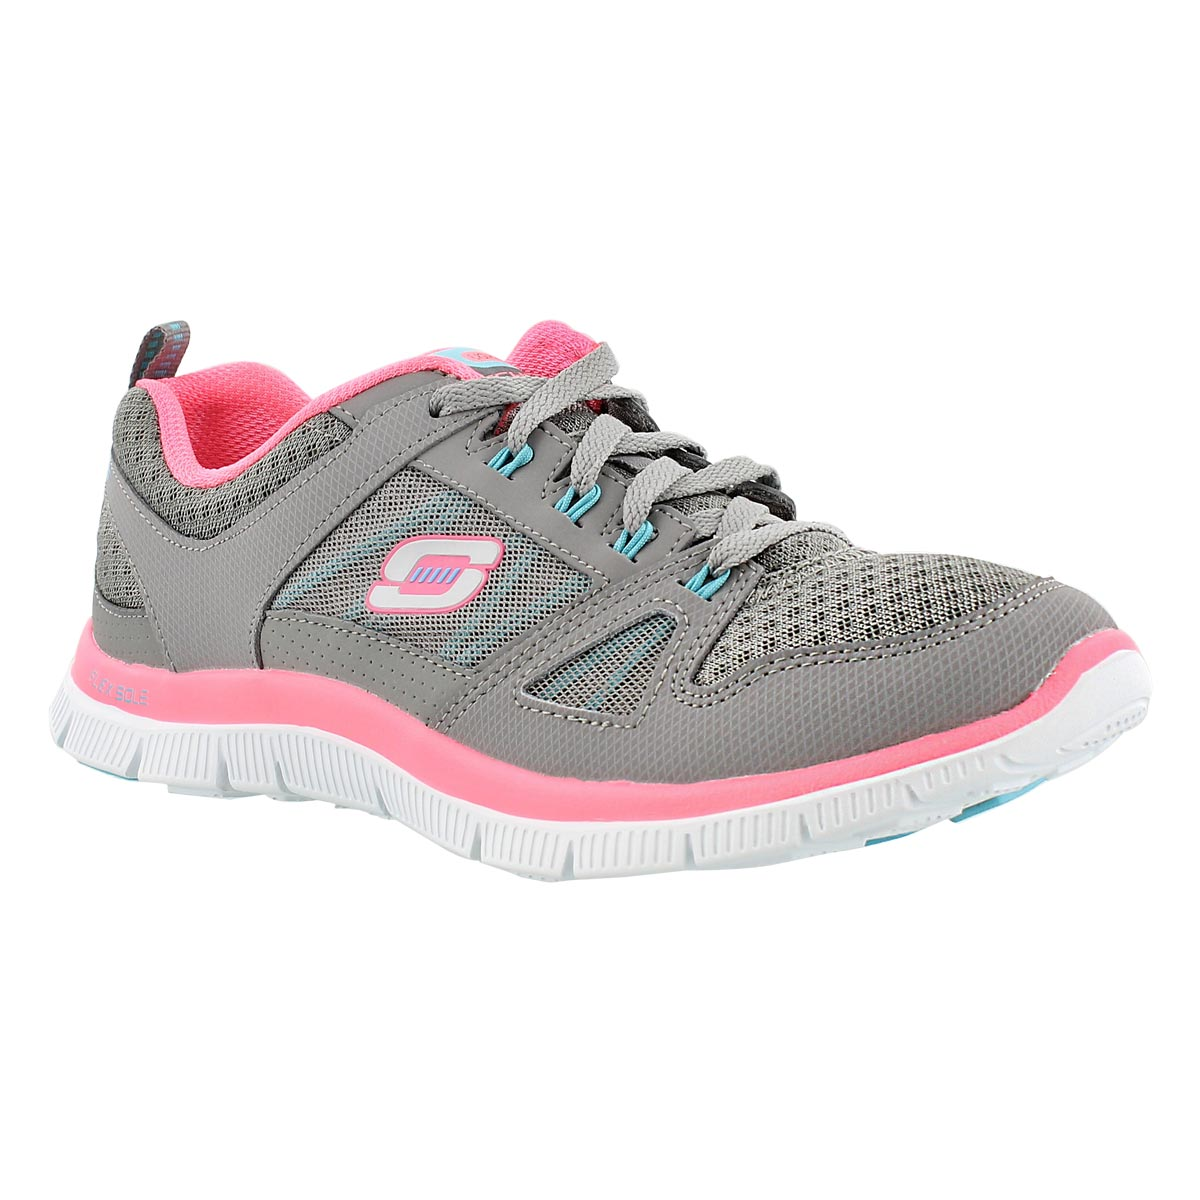 Lds Adaptable gry/pink lace up runner